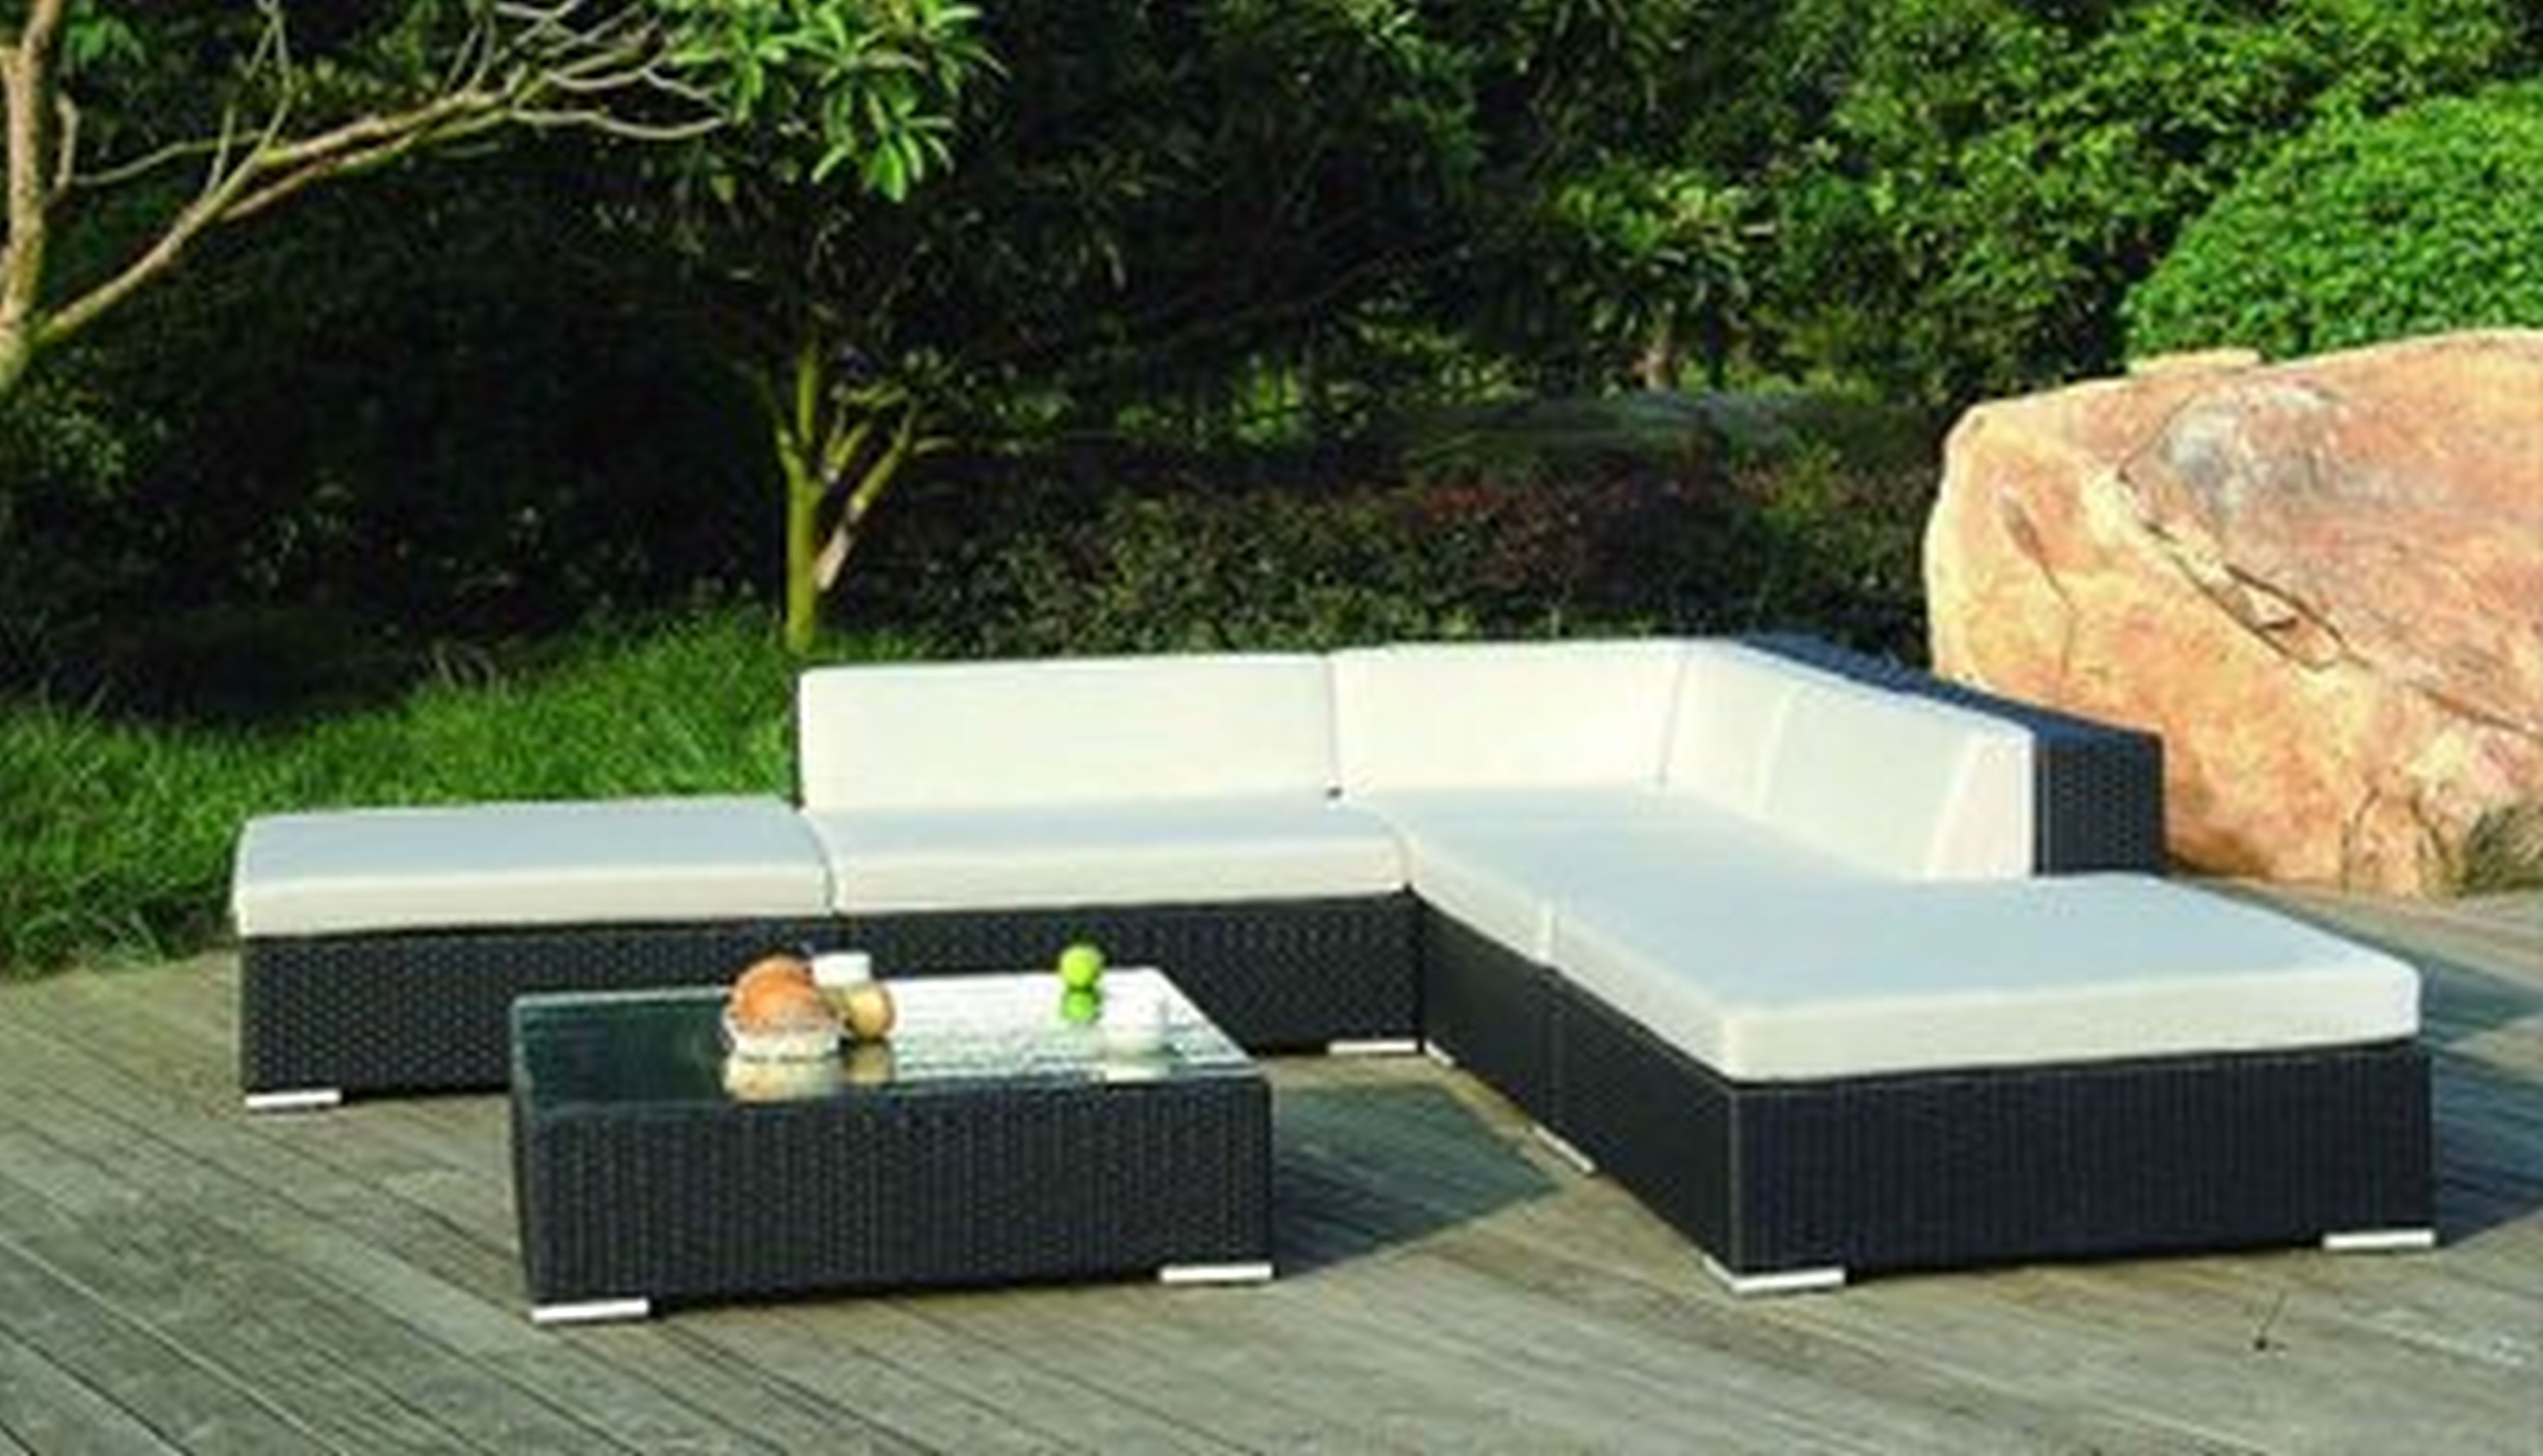 fancy clearance sectional sofas architecture-Wonderful Clearance Sectional sofas Inspiration